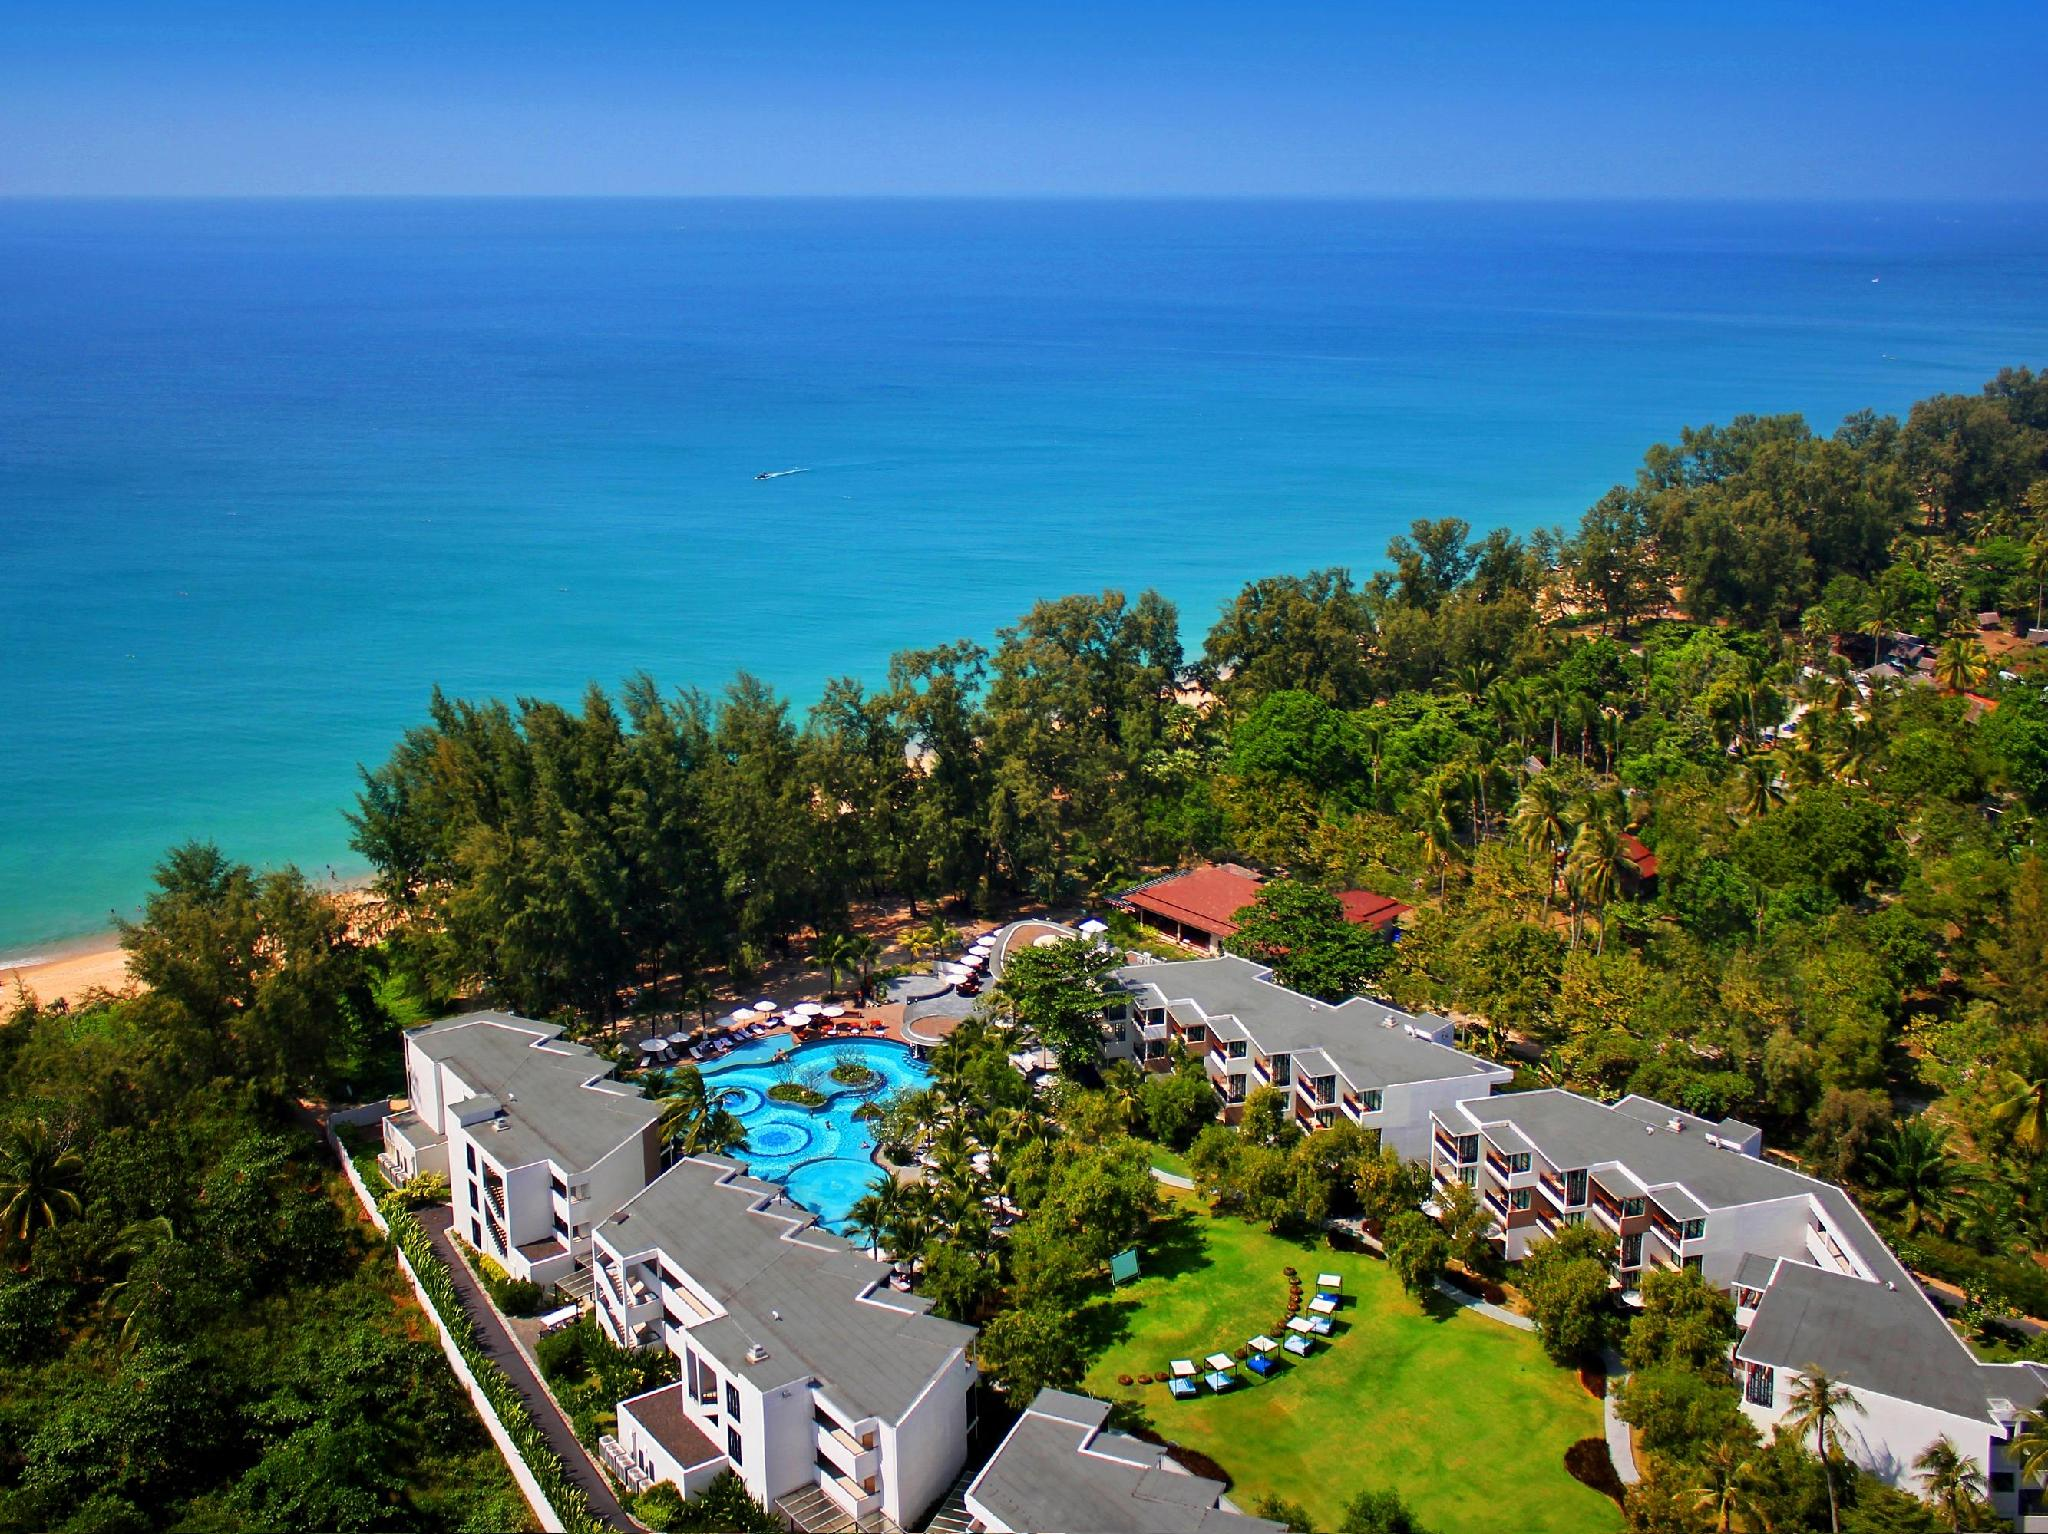 Holiday Inn Resort Phuket Mai Khao Beach Πουκέτ